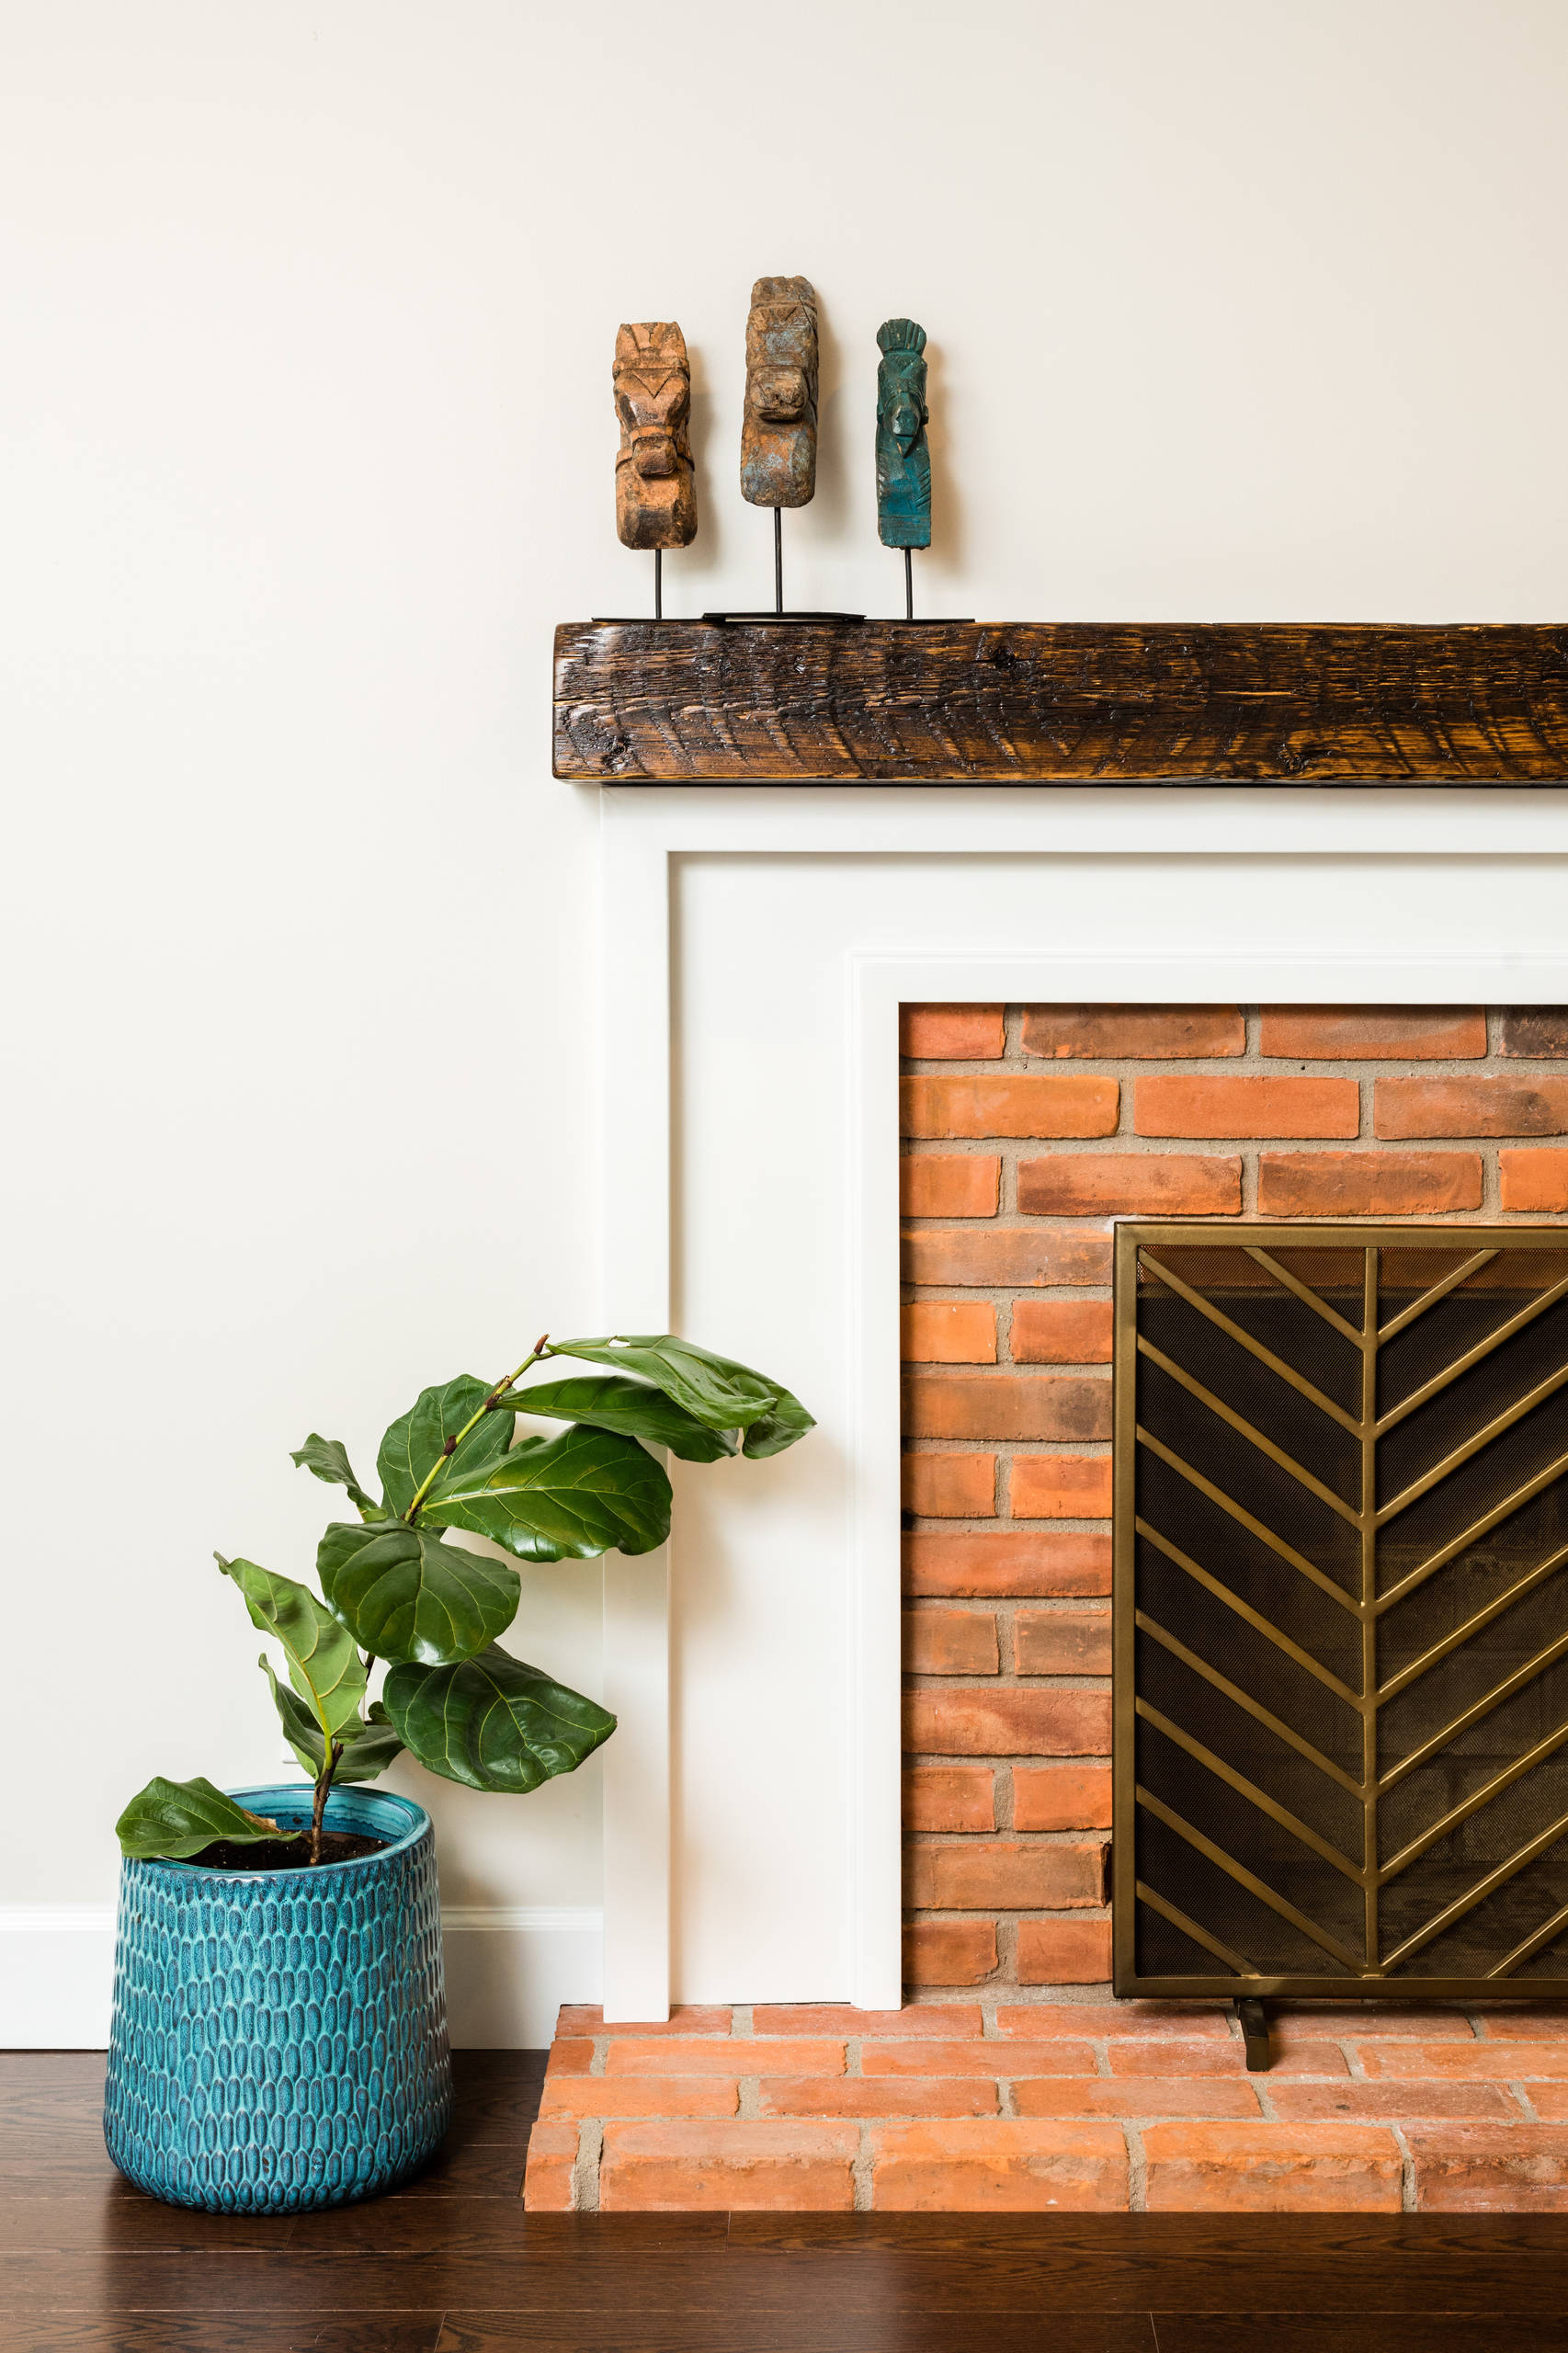 This mantle was created by a local woodsmith and artist with wood reclaimed from a Detroit Fire Station in Downtown Detroit Michigan. Each piece is numbered and registered, giving a little bit of love